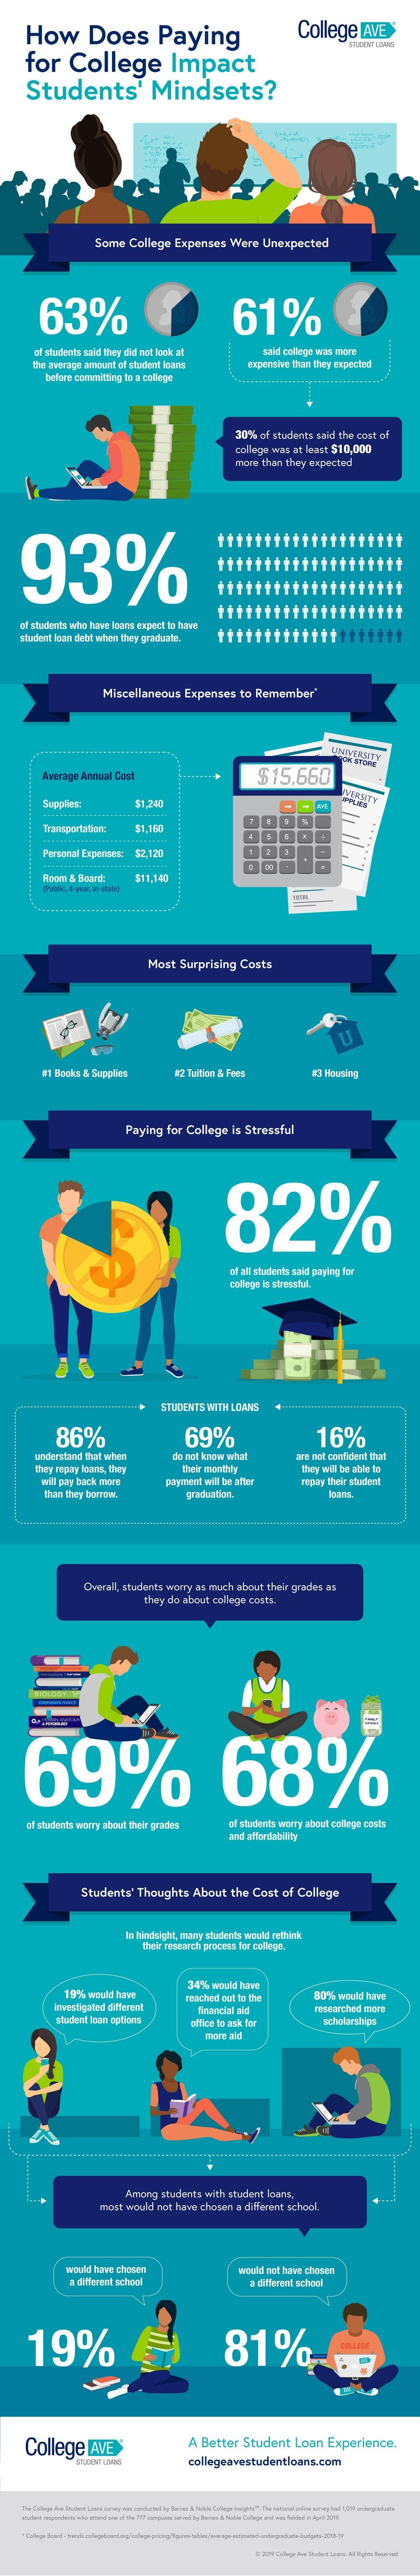 How Does Paying for College Impact Students' Mindsets? #infographic